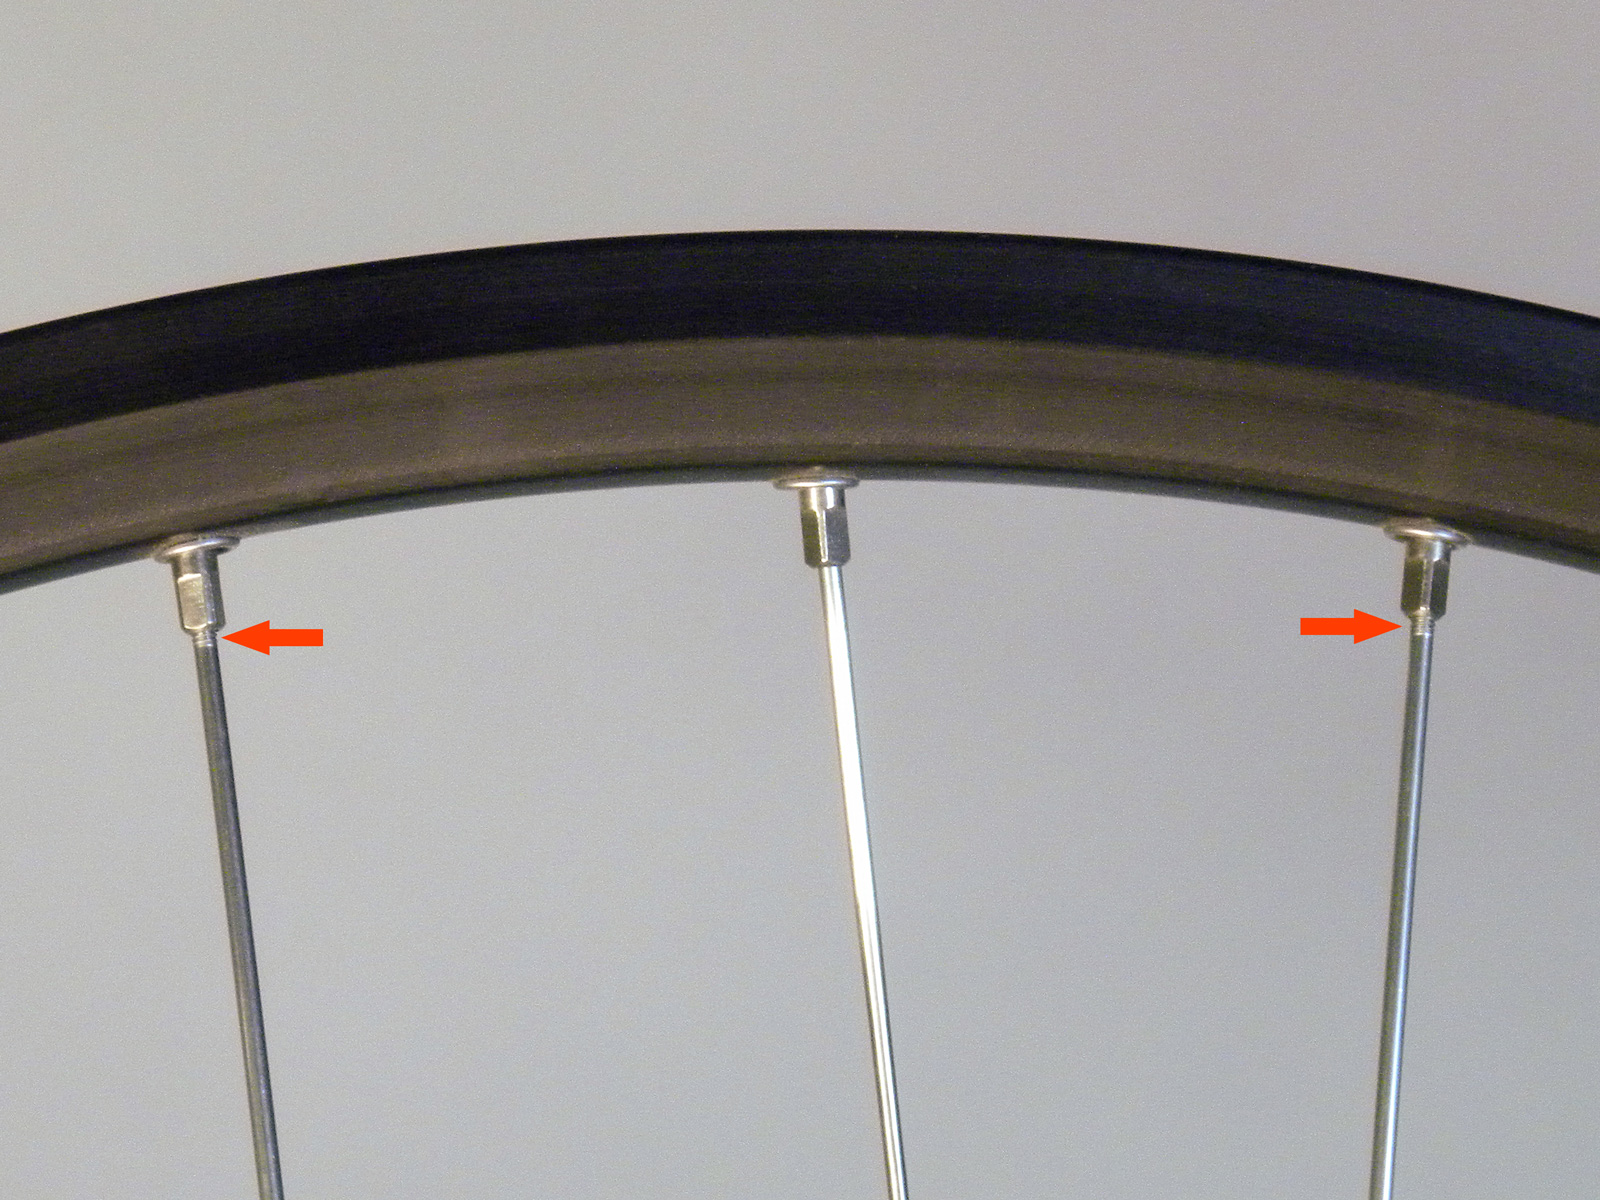 An example of a wheel with slightly too short spokes yet still completely functional